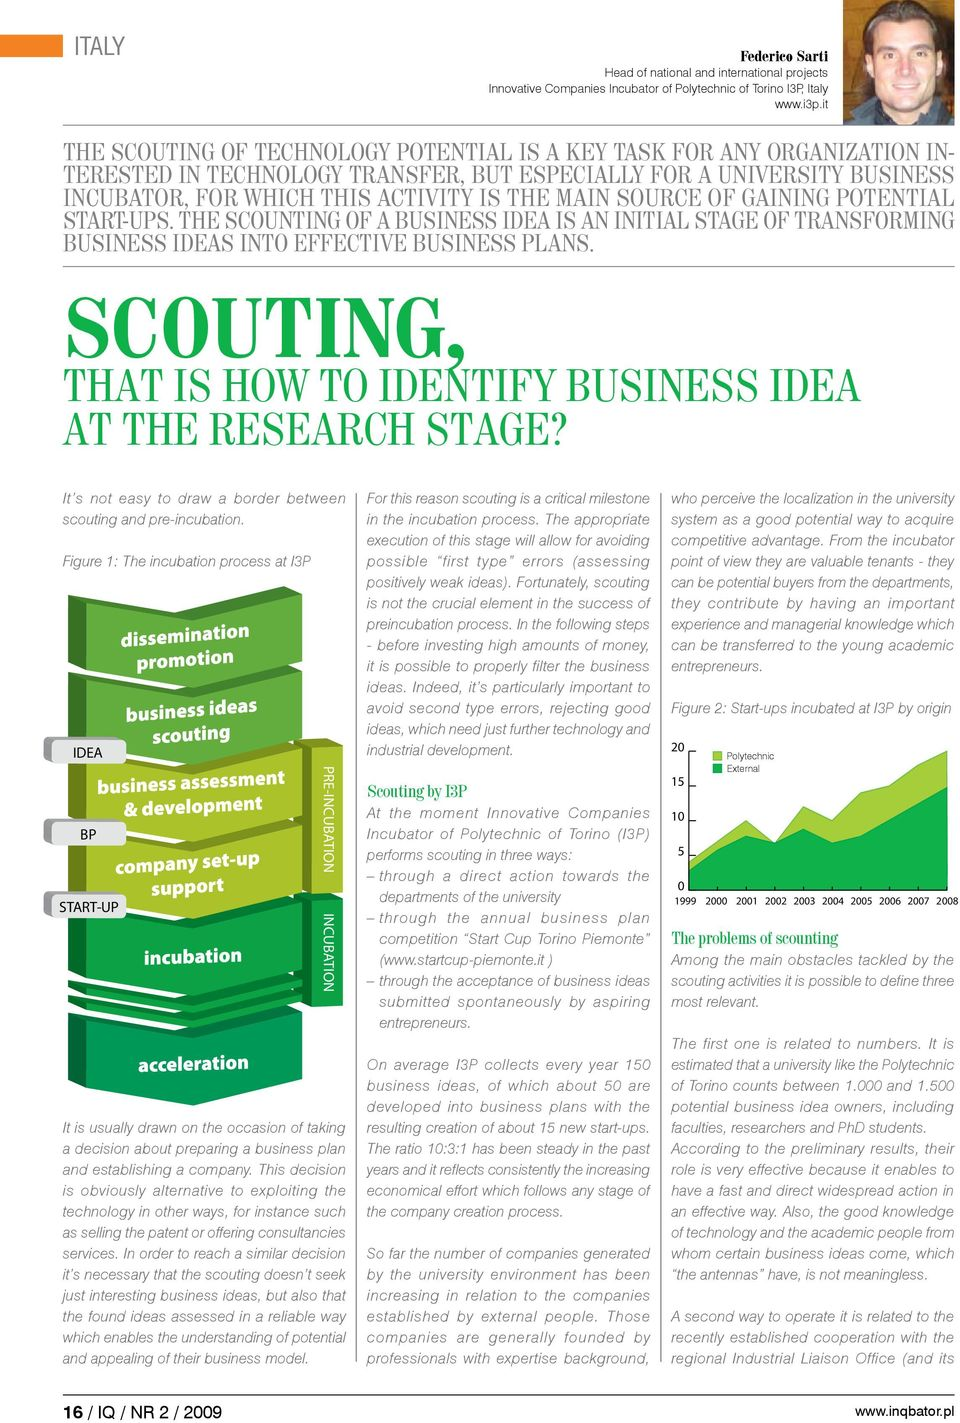 source of gaining potential start-ups. The scounting of a business idea is an initial stage of transforming business ideas into effective business plans.